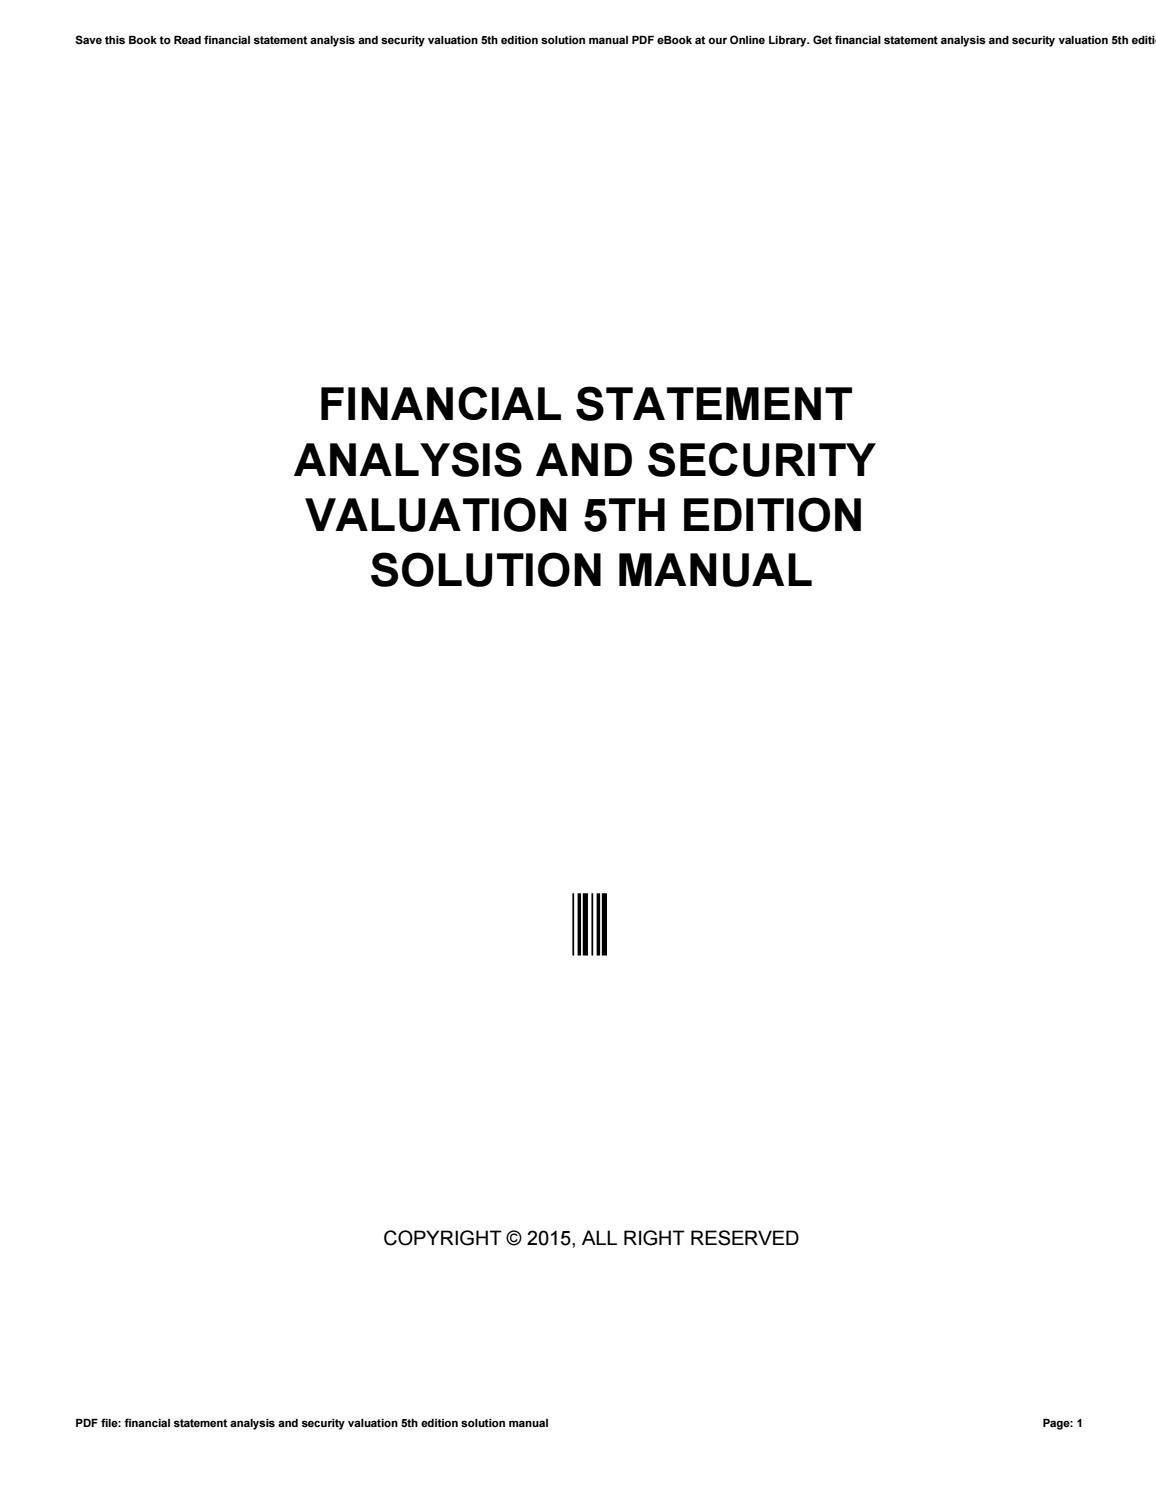 financial analysis and valuation ebook